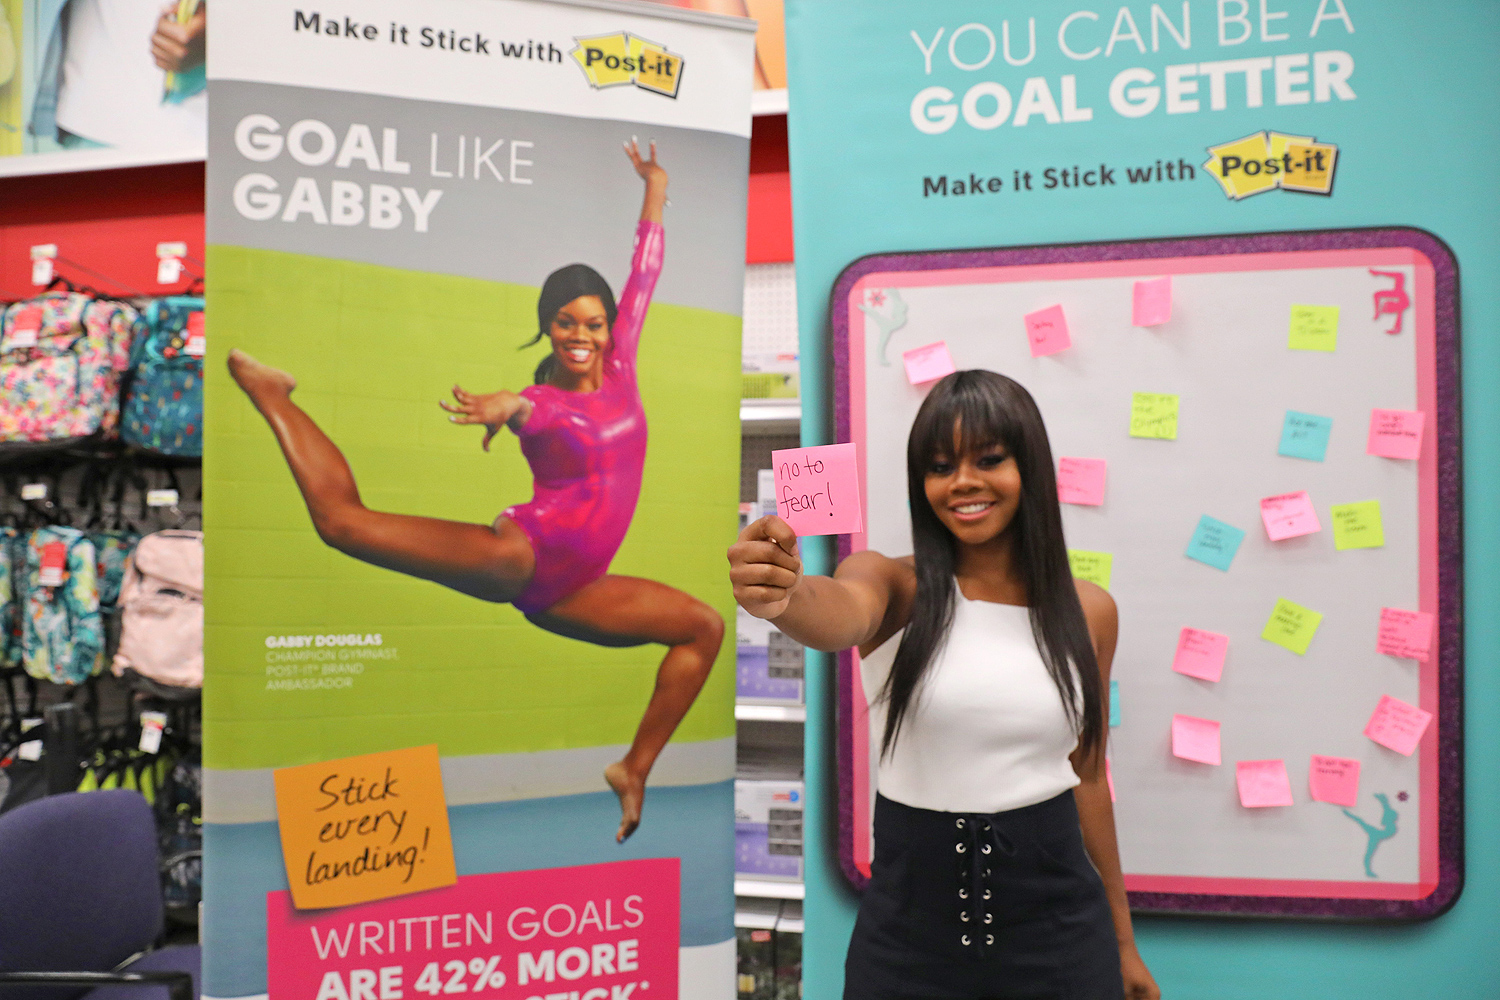 Champion Gymnast Gabby Douglas and Post-it Brand Make It Stick For Back-to-School 2017 at Target in Edina, MN